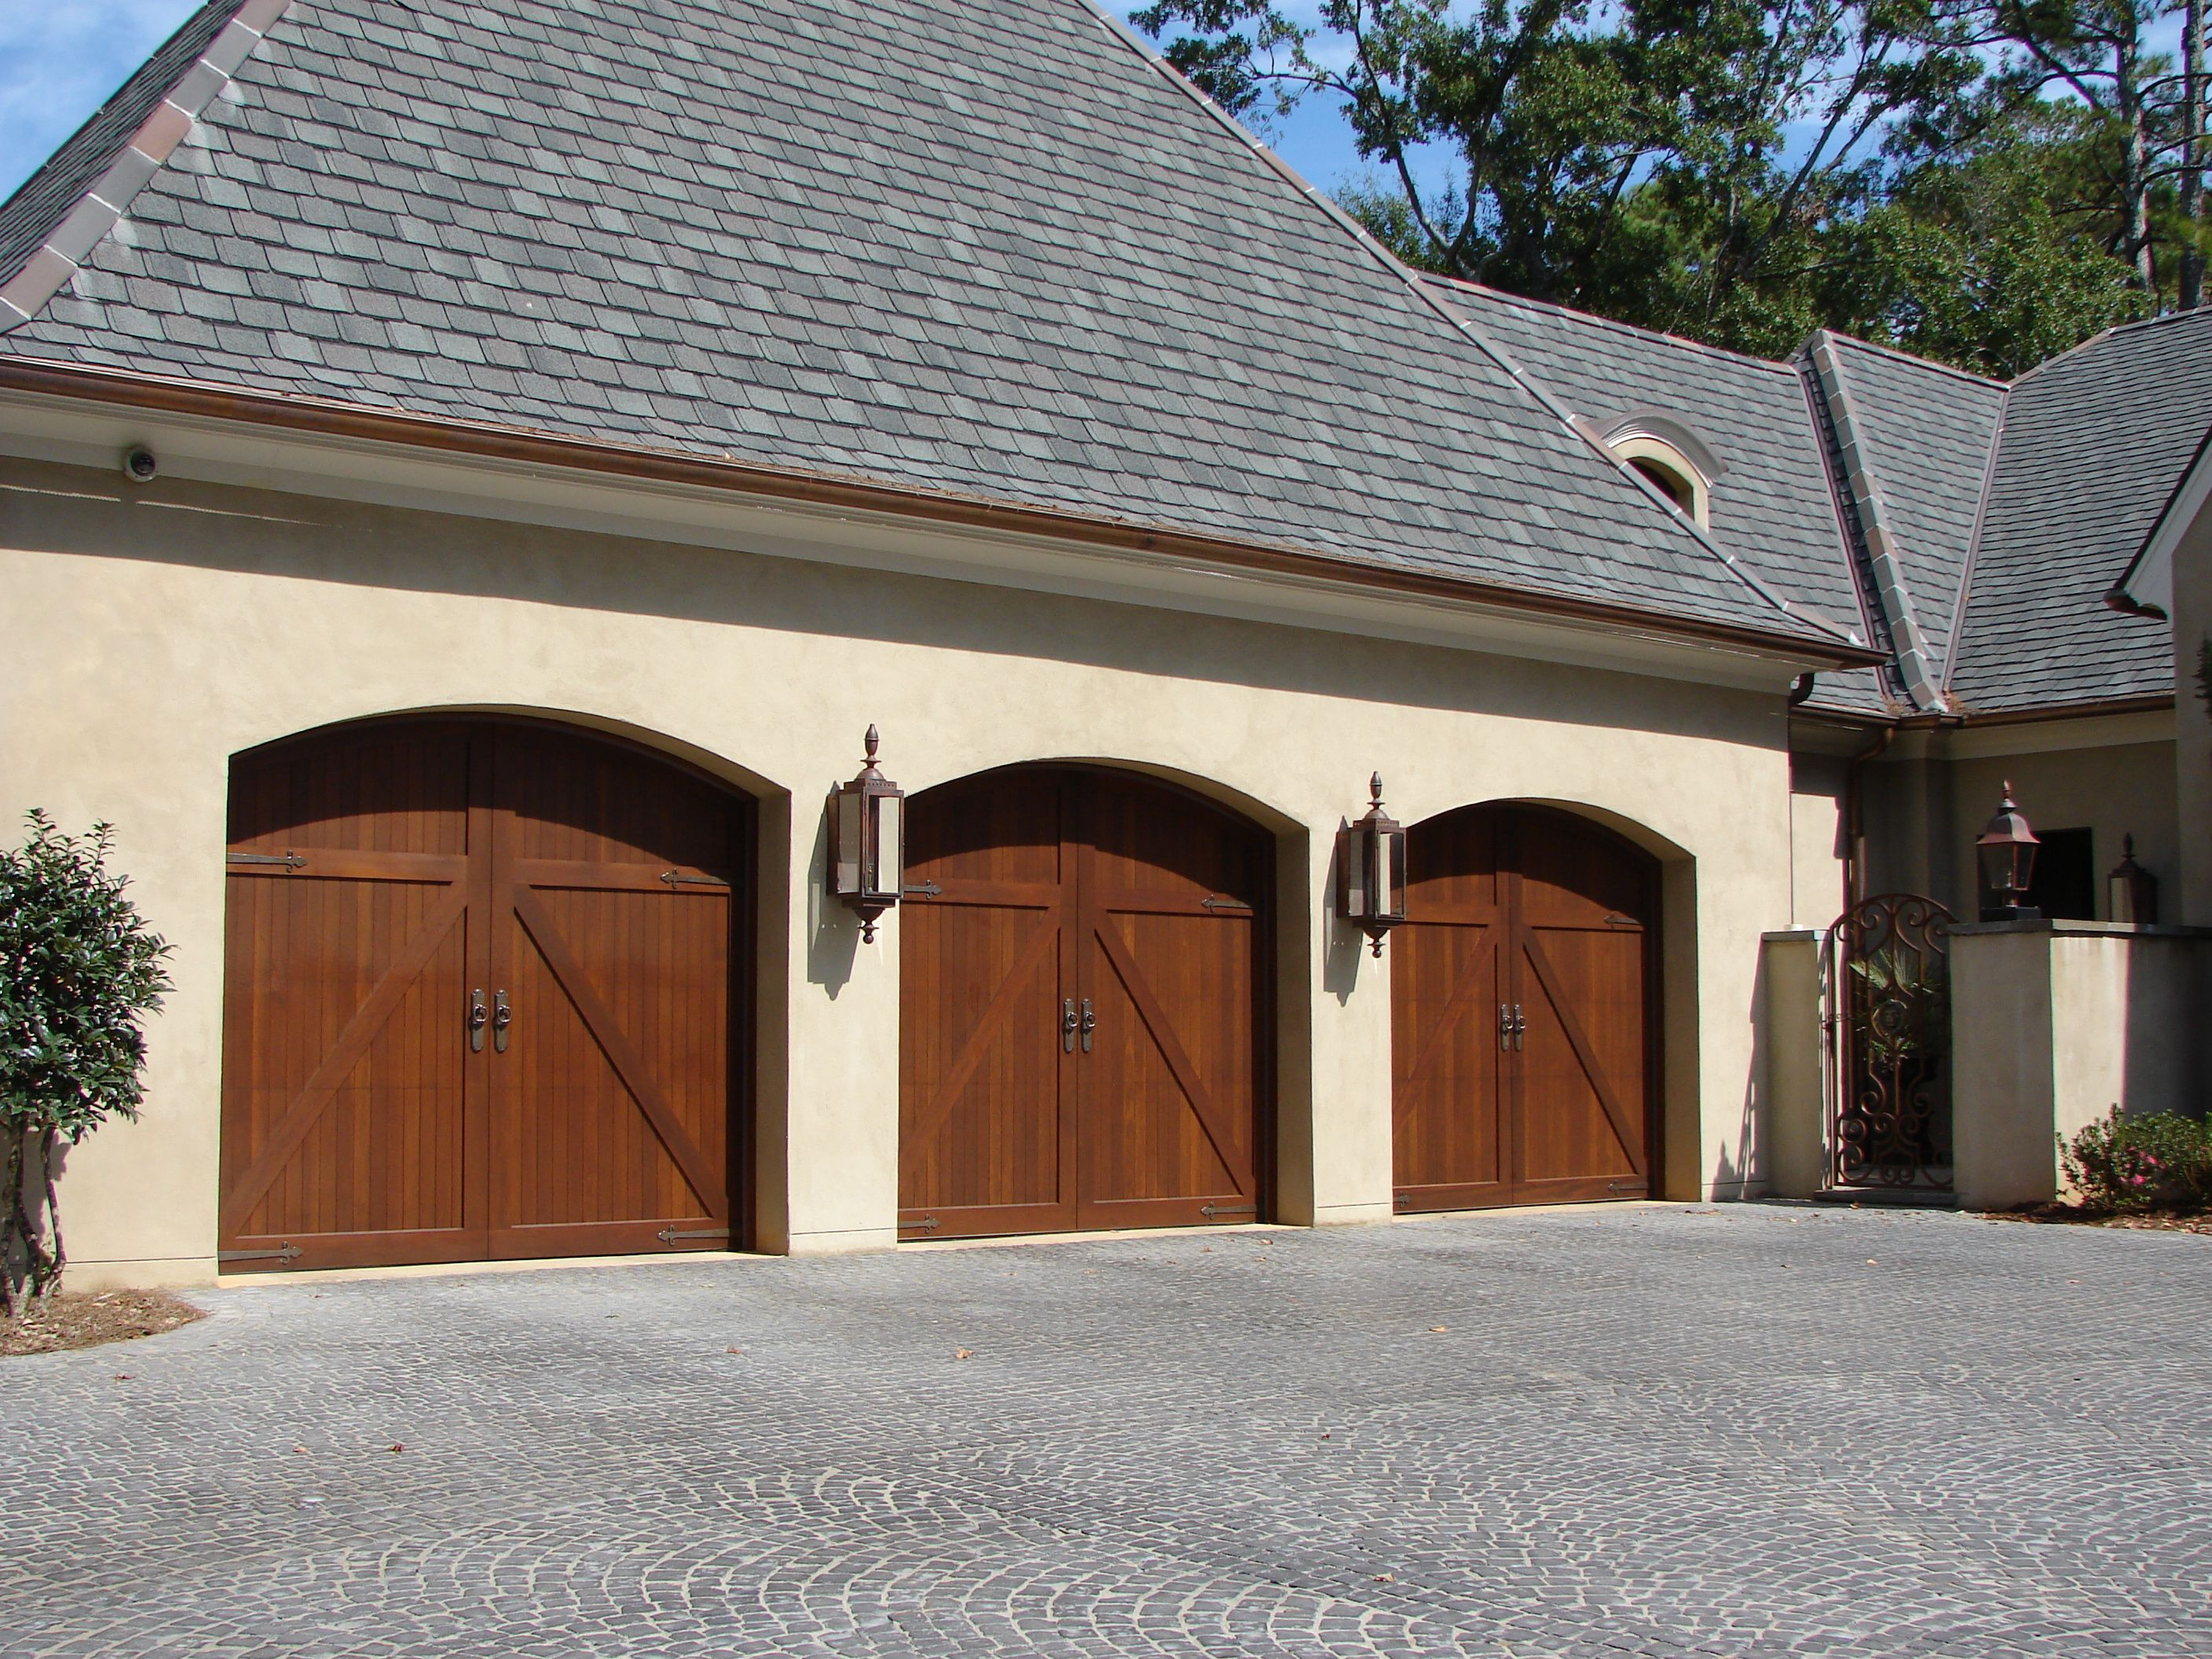 Attirant Garage Doors With Beautiful Stucco Exterior And Roof Pitch